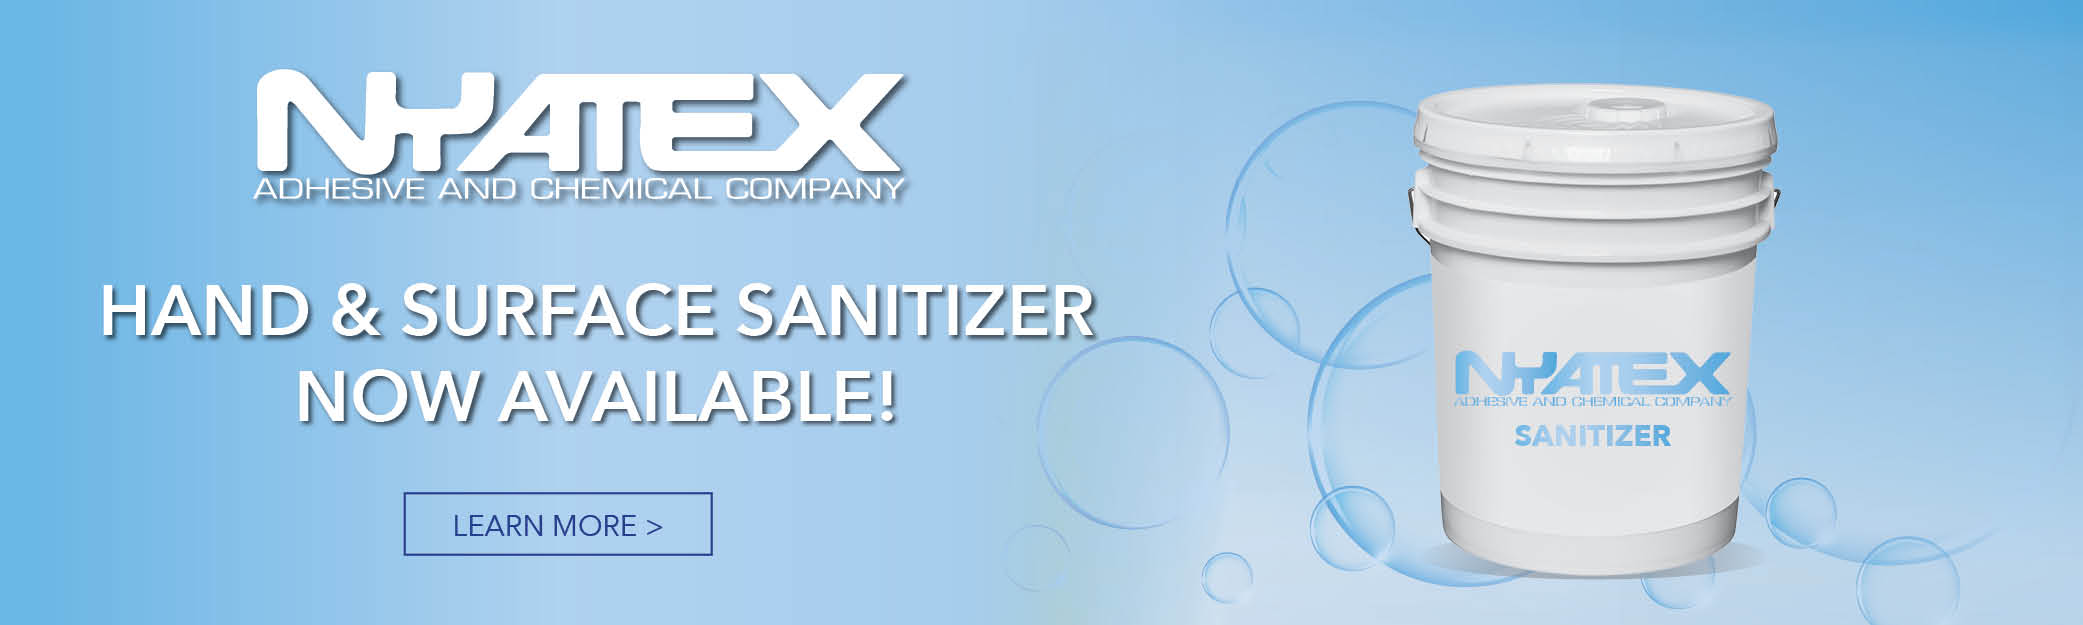 Nyatex sanitizerslider 1